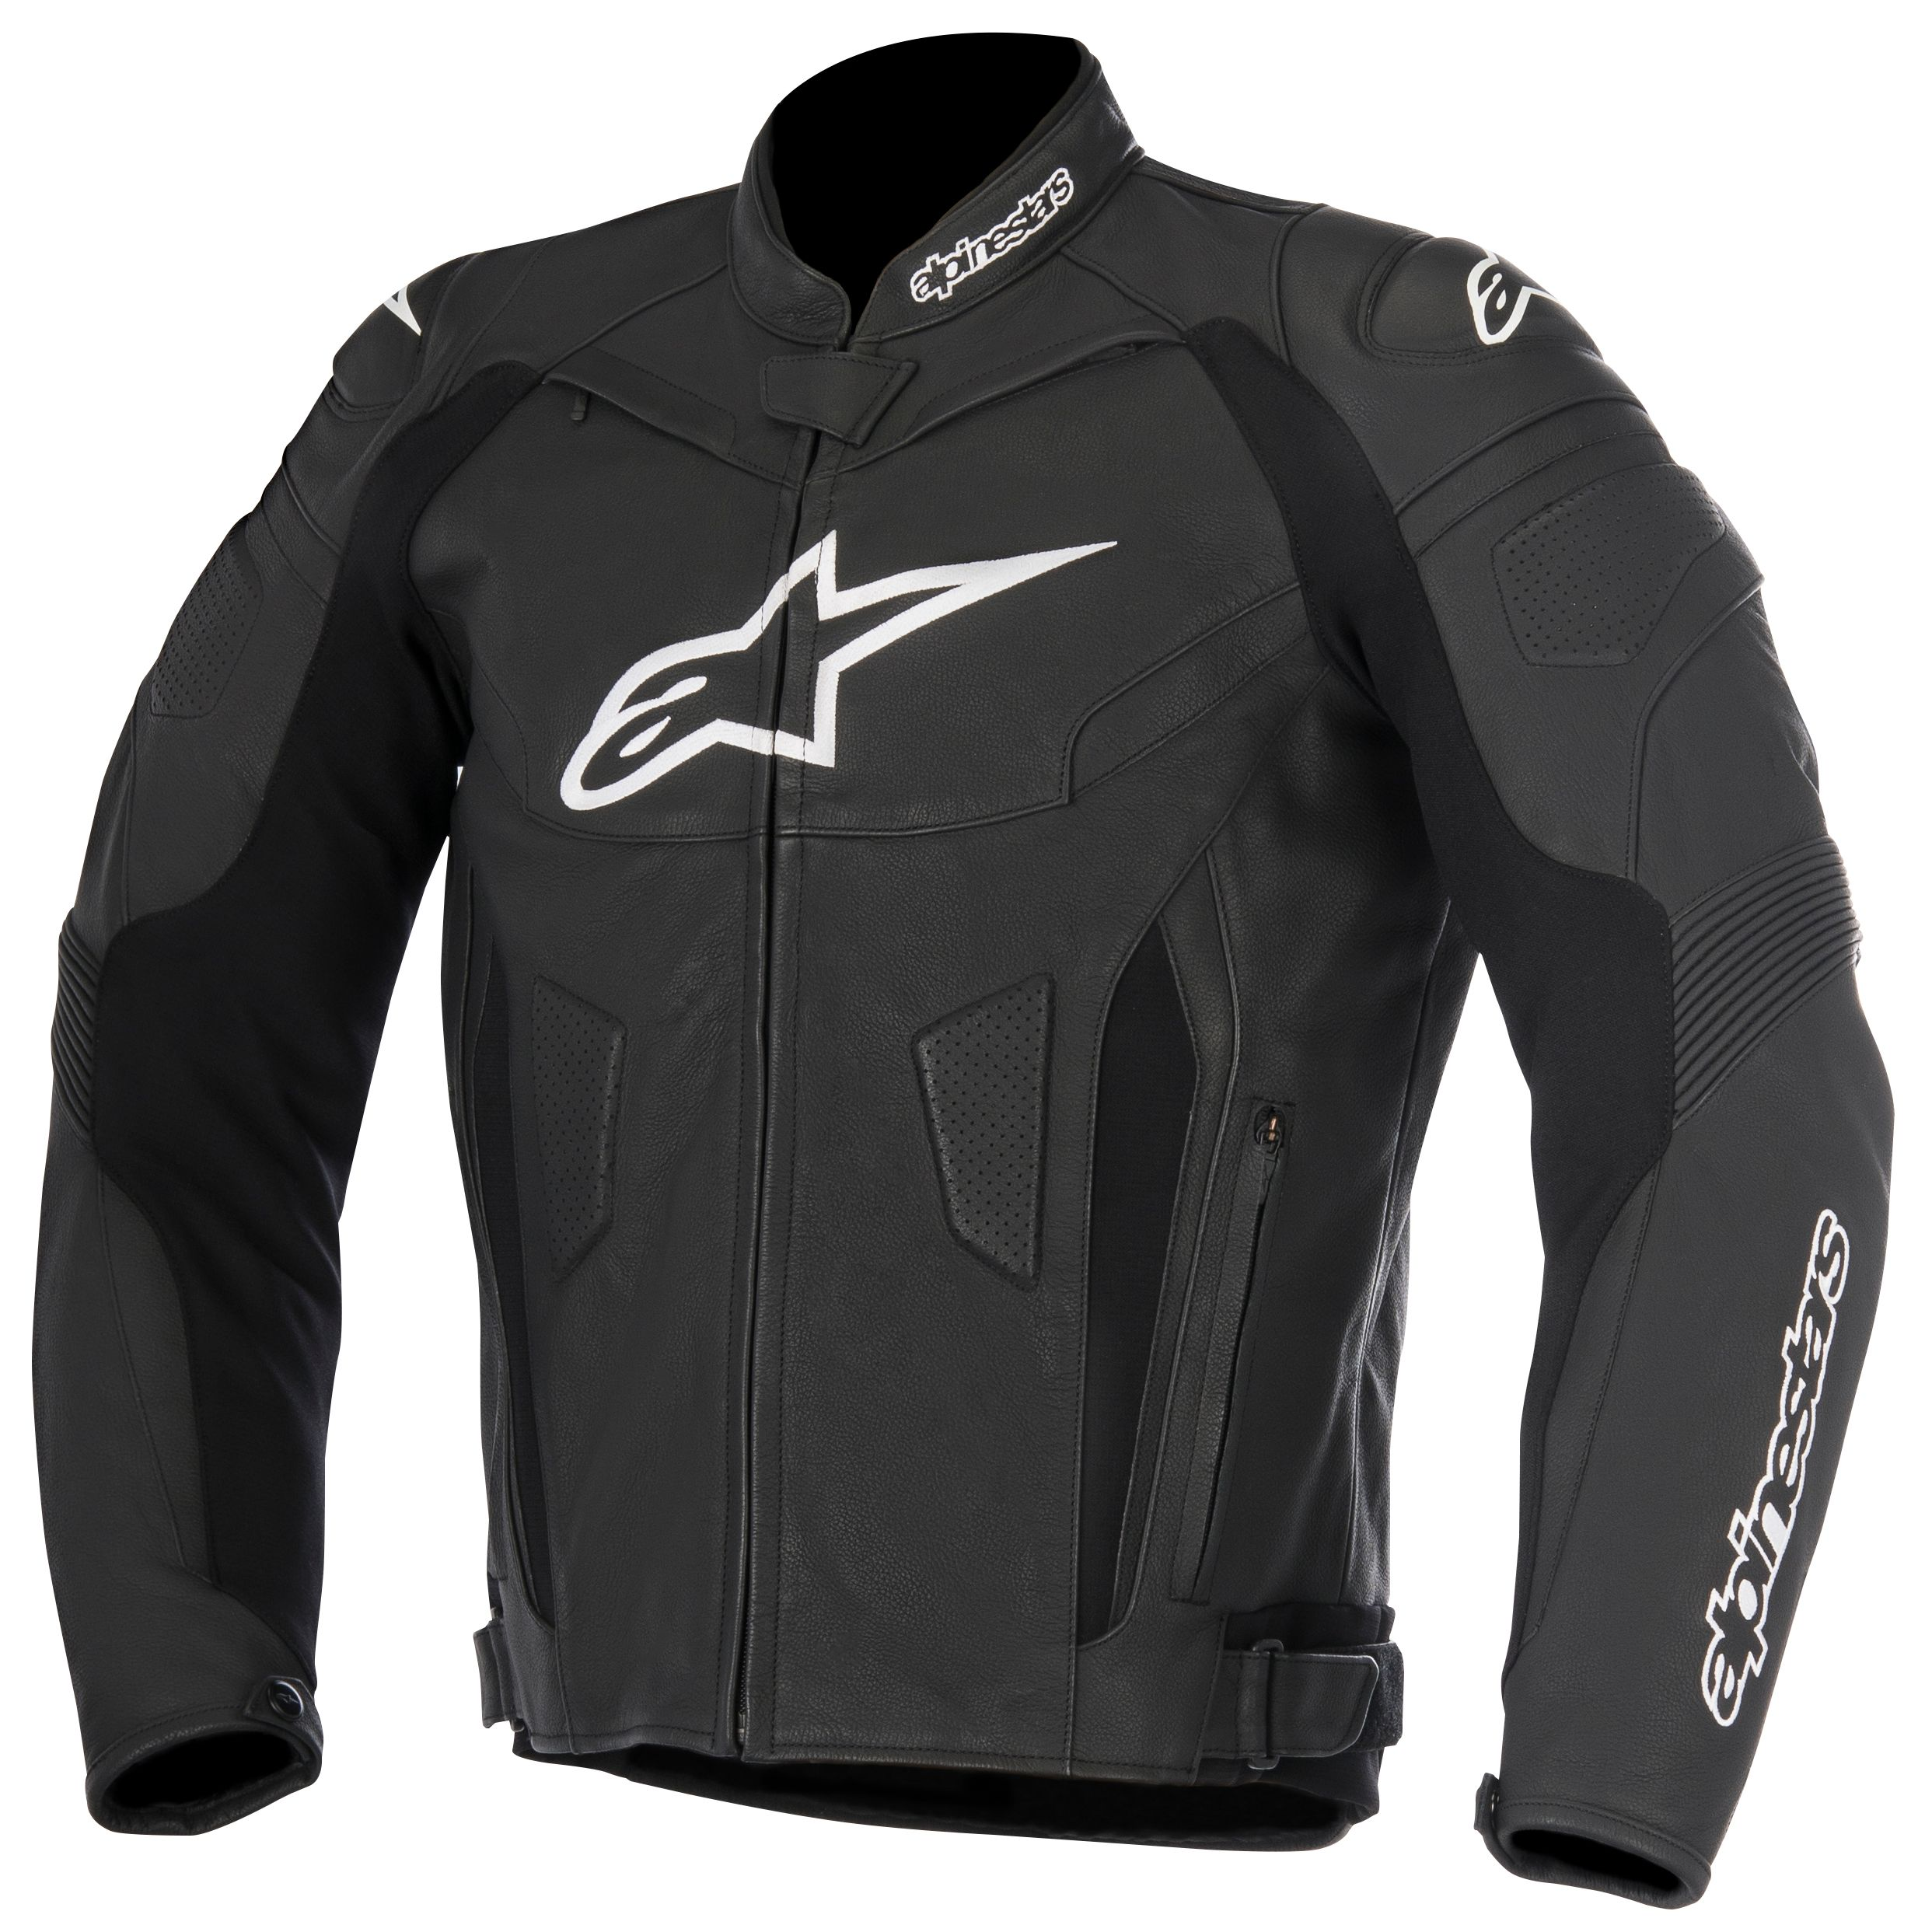 blouson alpinestars gp plus r v2 blouson et veste. Black Bedroom Furniture Sets. Home Design Ideas